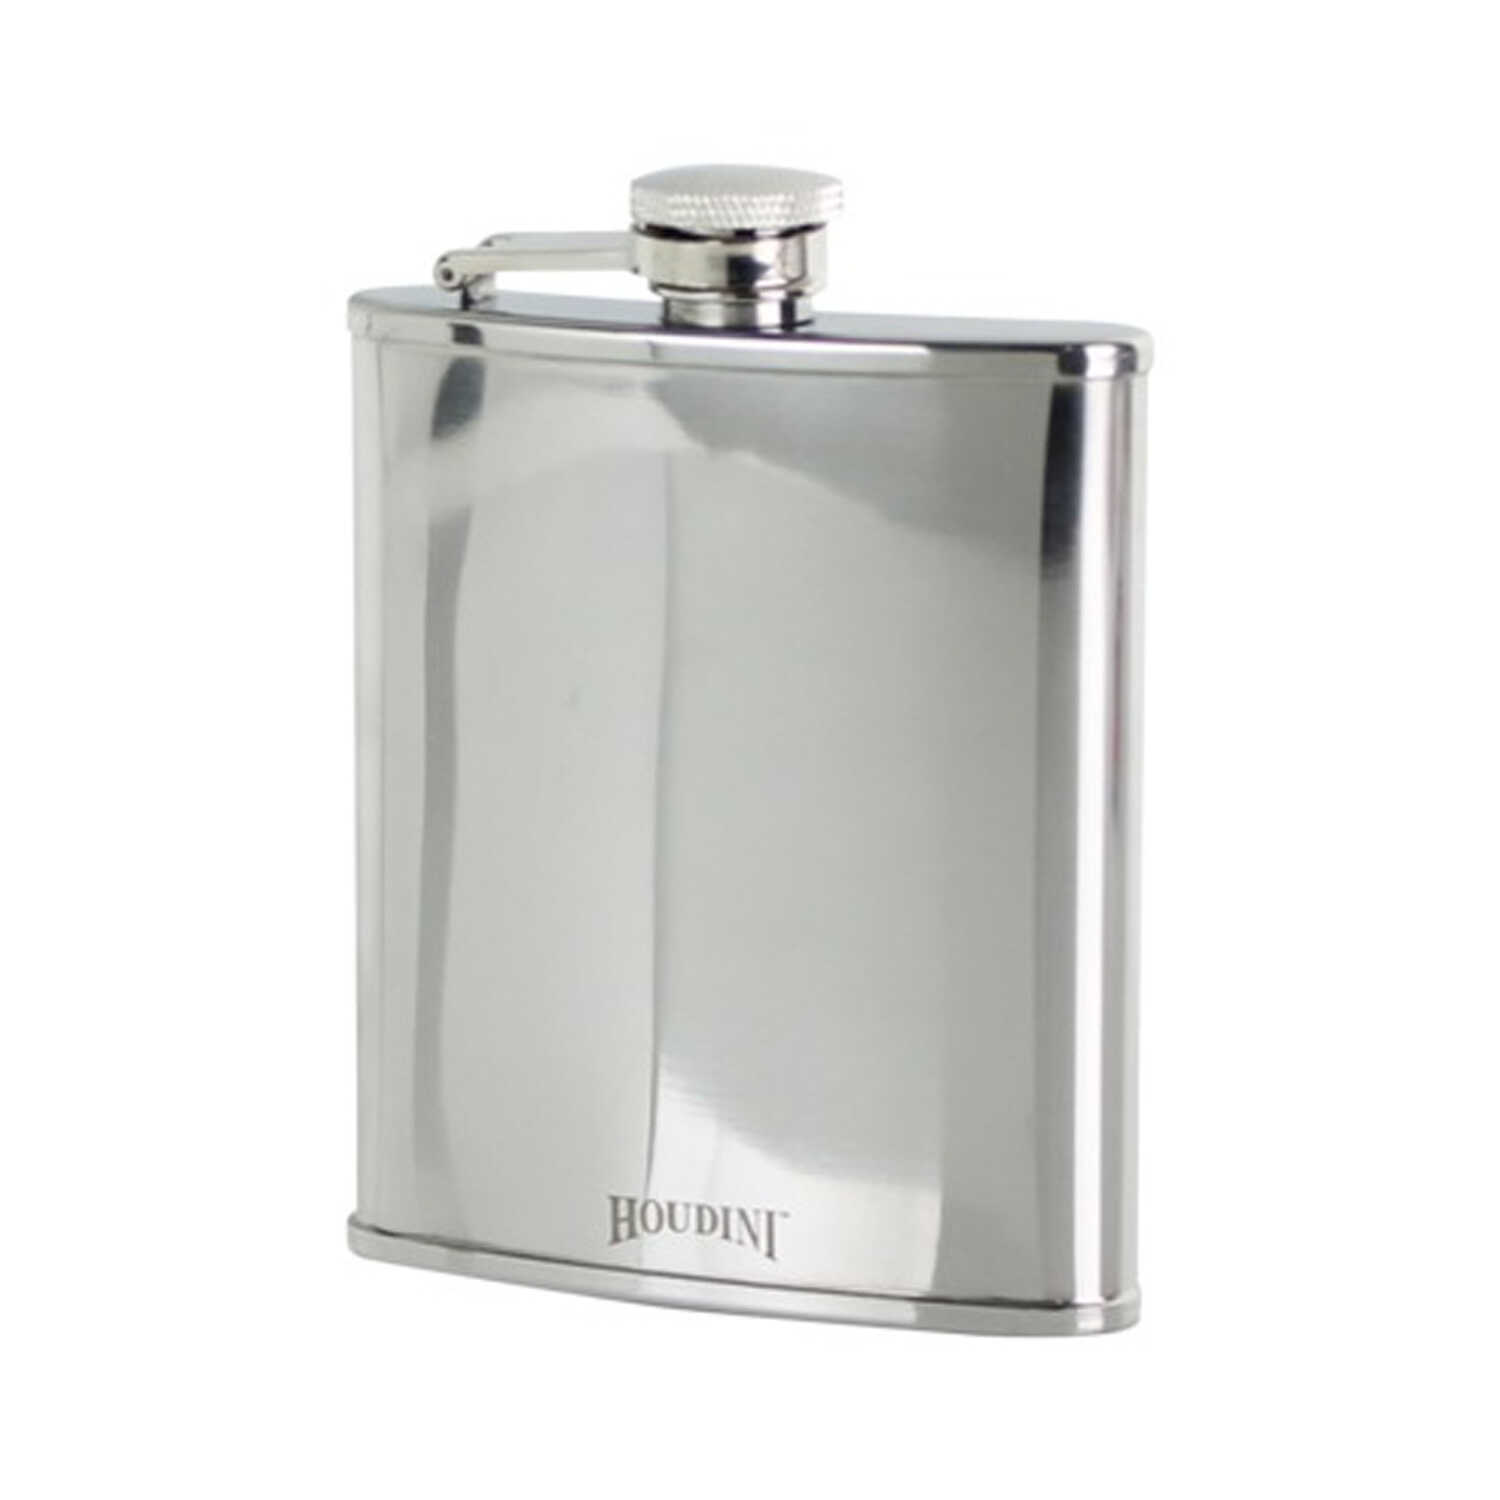 Houdini  6 ounce oz. Silver  Stainless Steel  Pocket Flask